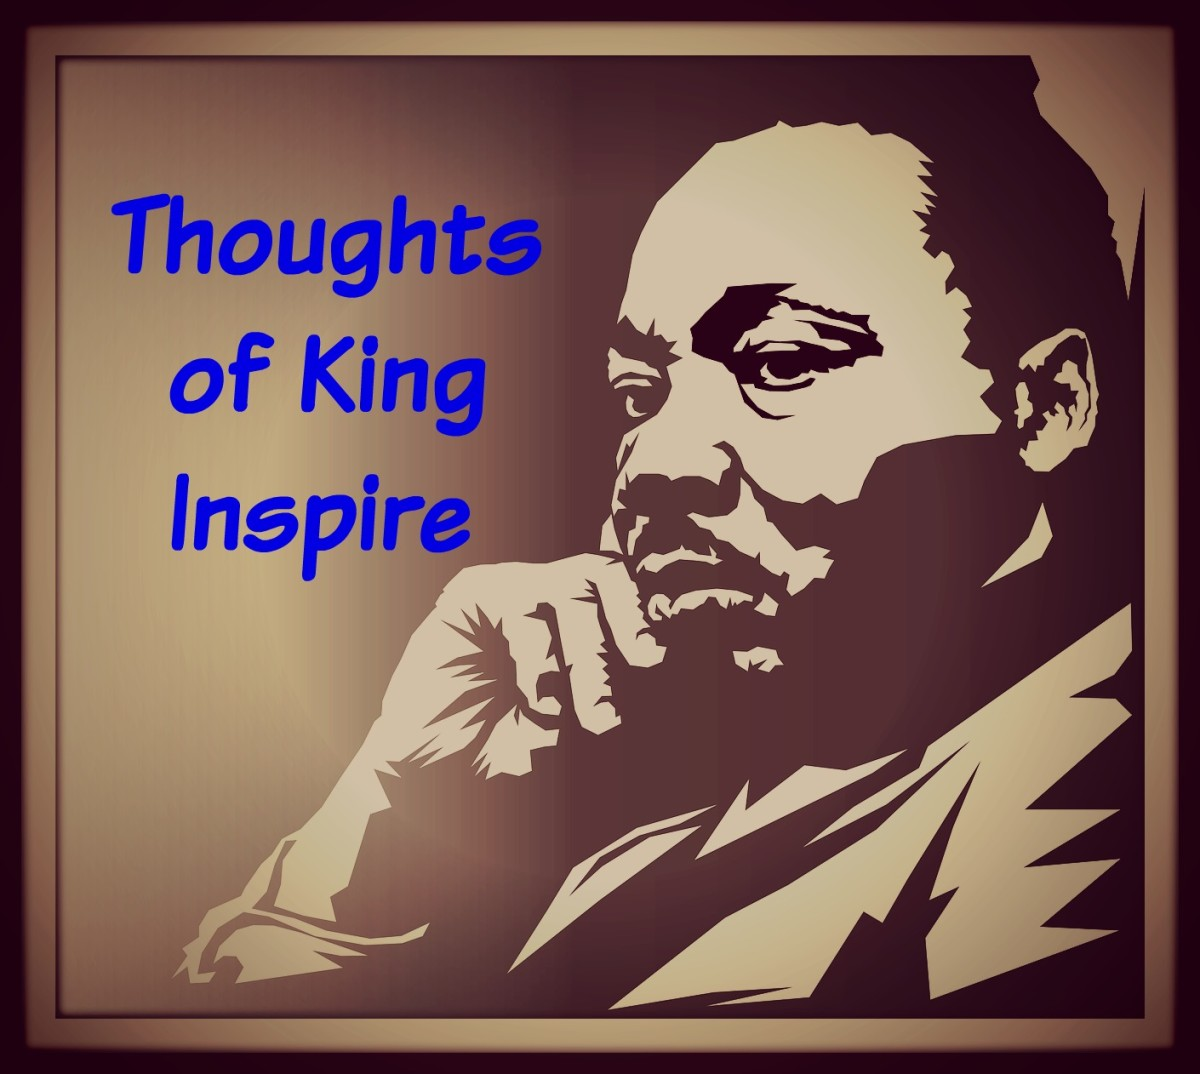 Turn your thoughts to the thoughts of martin Luther King, Jr.